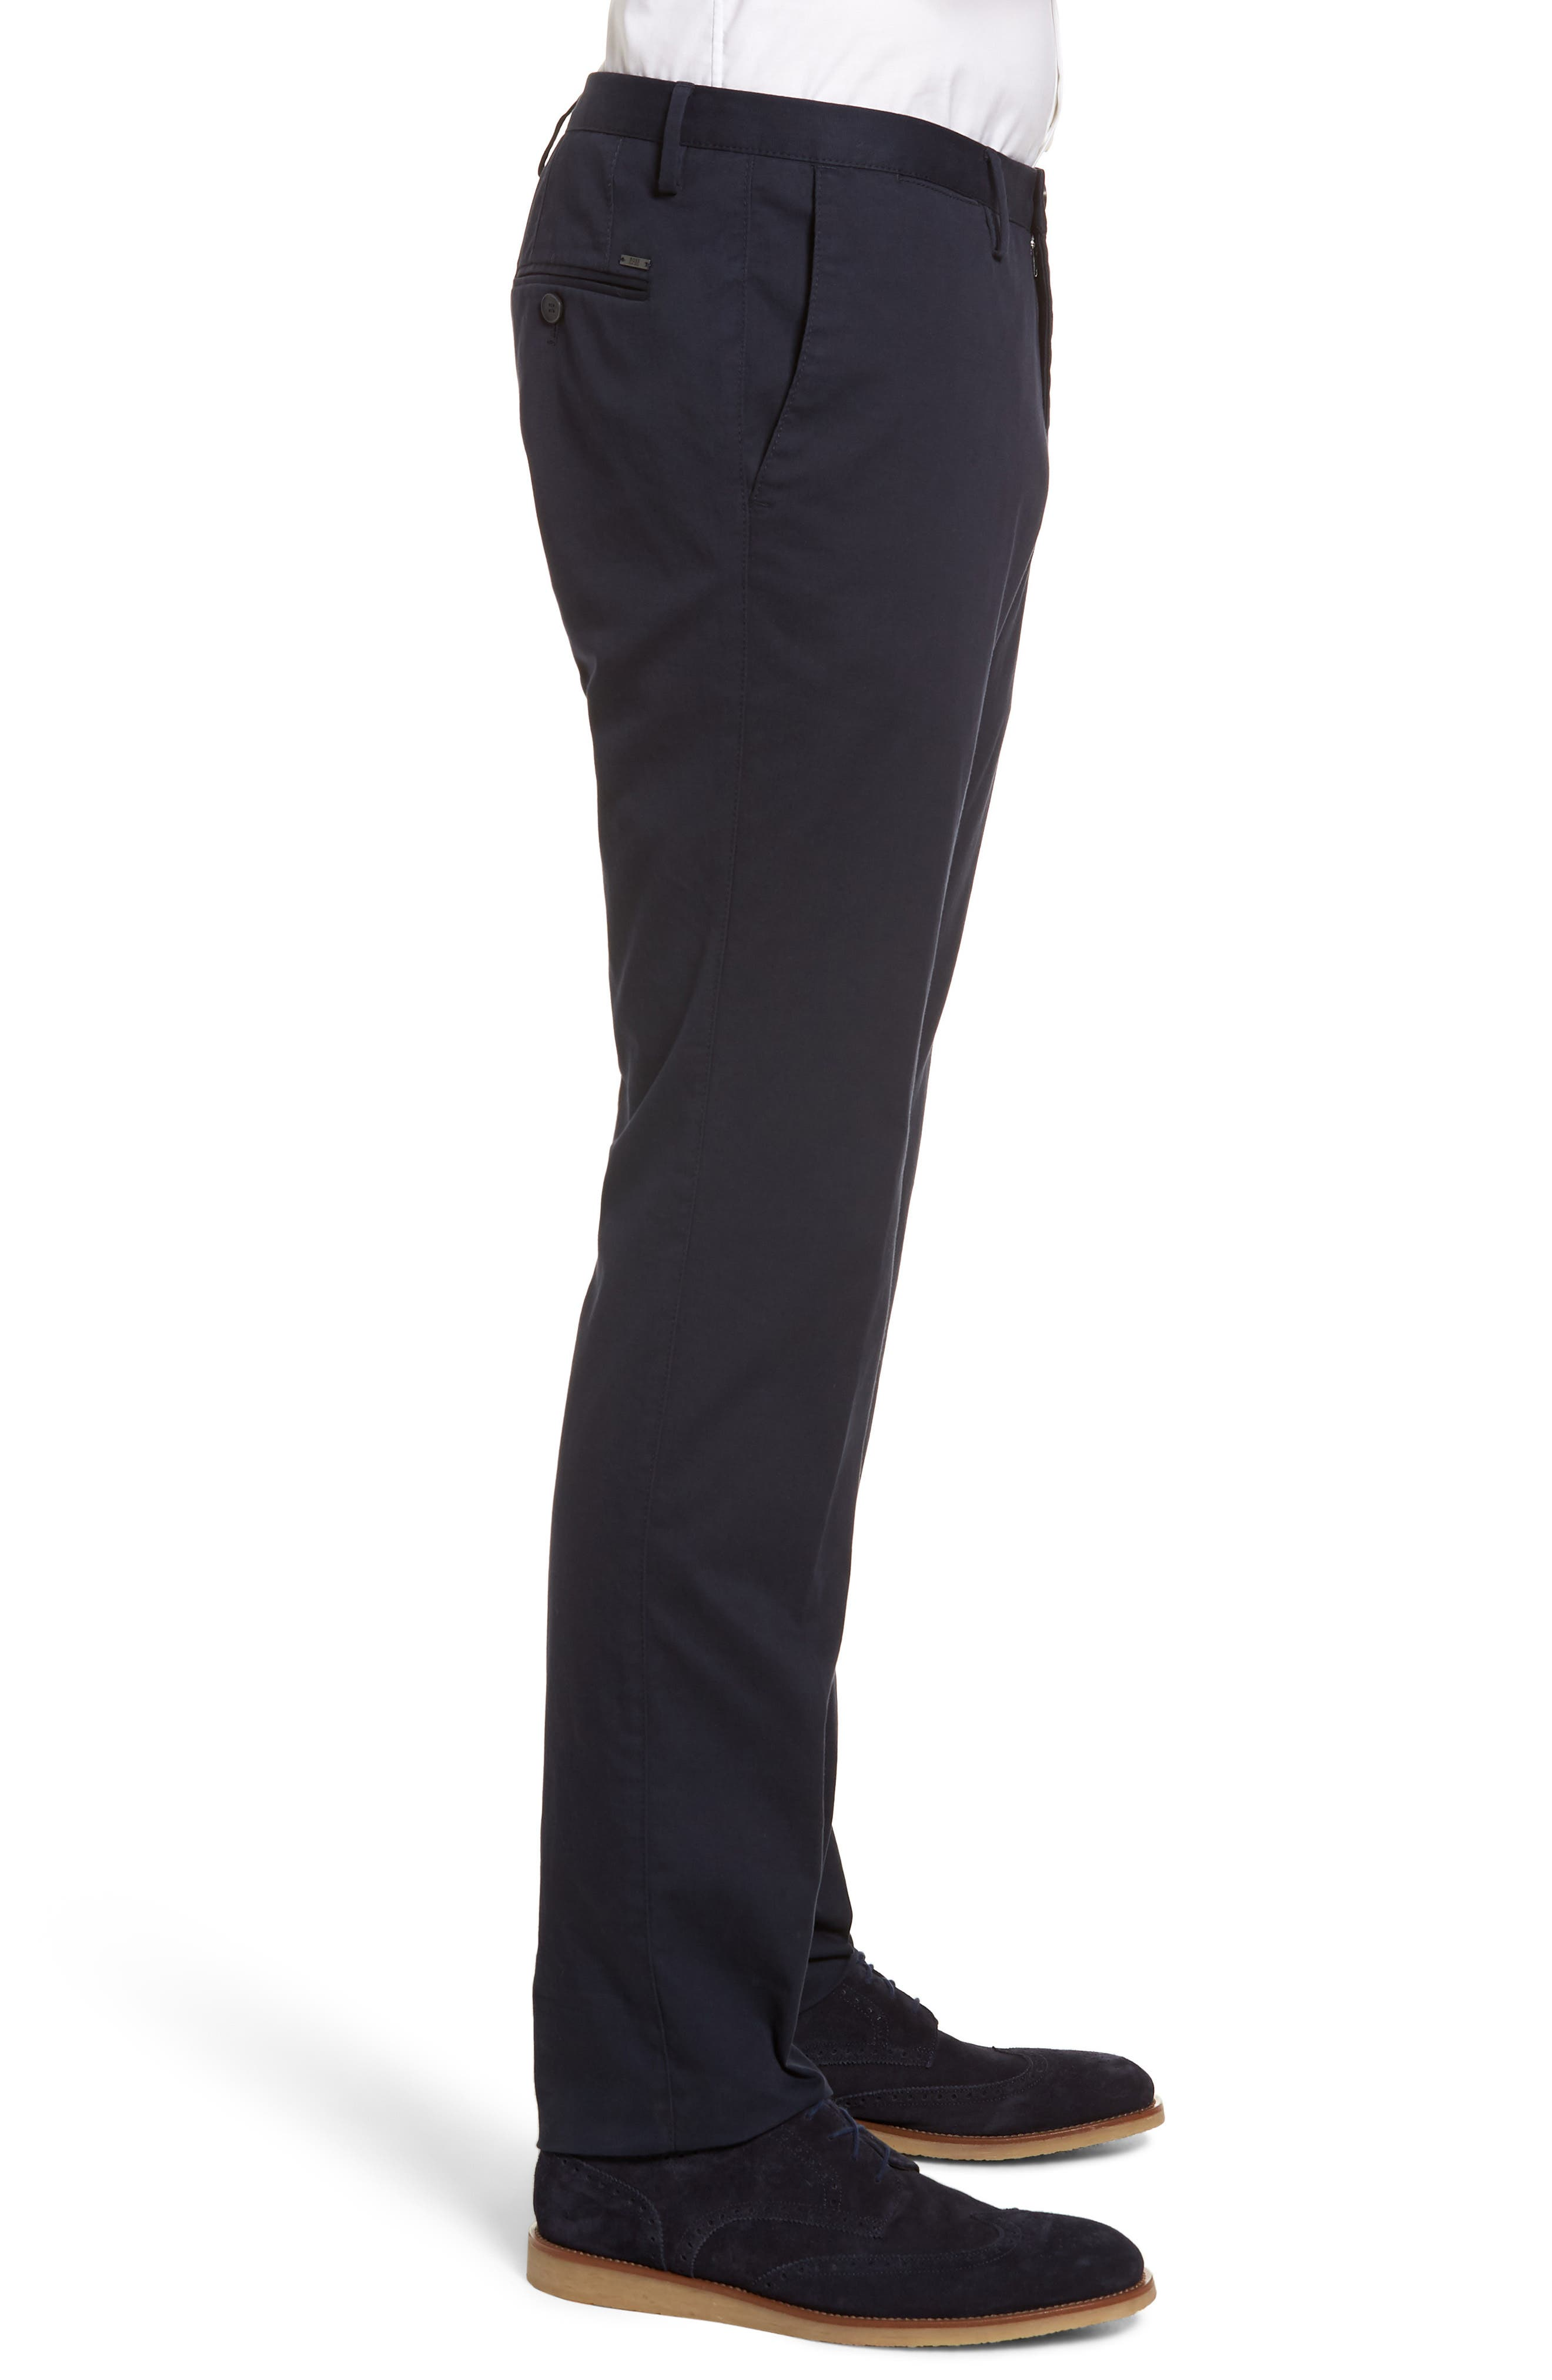 Stanino-W Flat Front Stretch Cotton Trousers,                             Alternate thumbnail 3, color,                             Navy